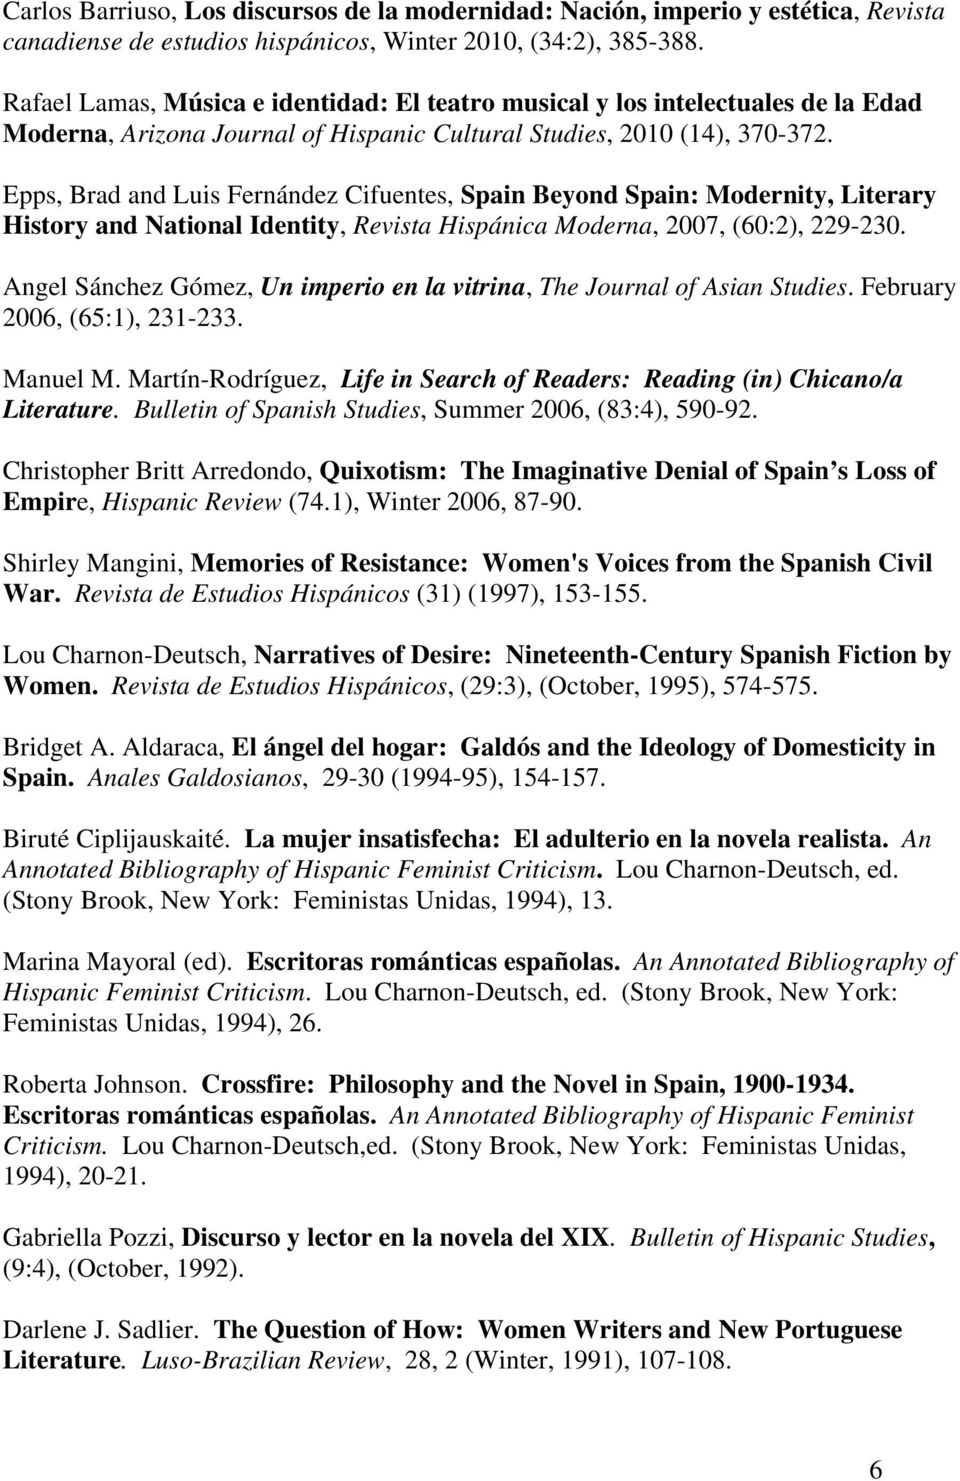 Epps, Brad and Luis Fernández Cifuentes, Spain Beyond Spain: Modernity, Literary History and National Identity, Revista Hispánica Moderna, 2007, (60:2), 229-230.